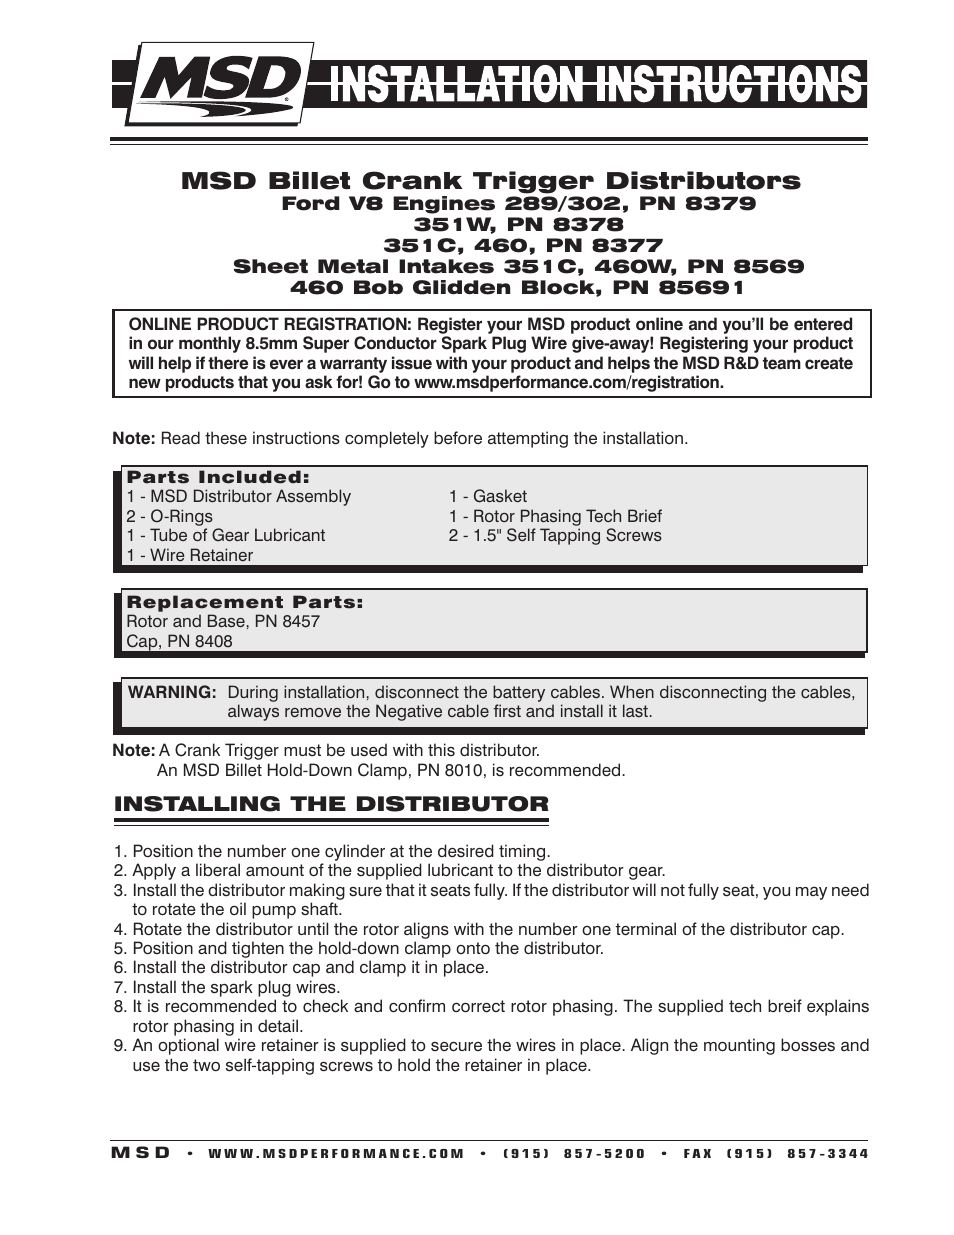 medium resolution of msd 8378 ford 351w crank trigger distributor installation user manual 2 pages also for 8569 ford 351c 460 crank trigger distributor installation